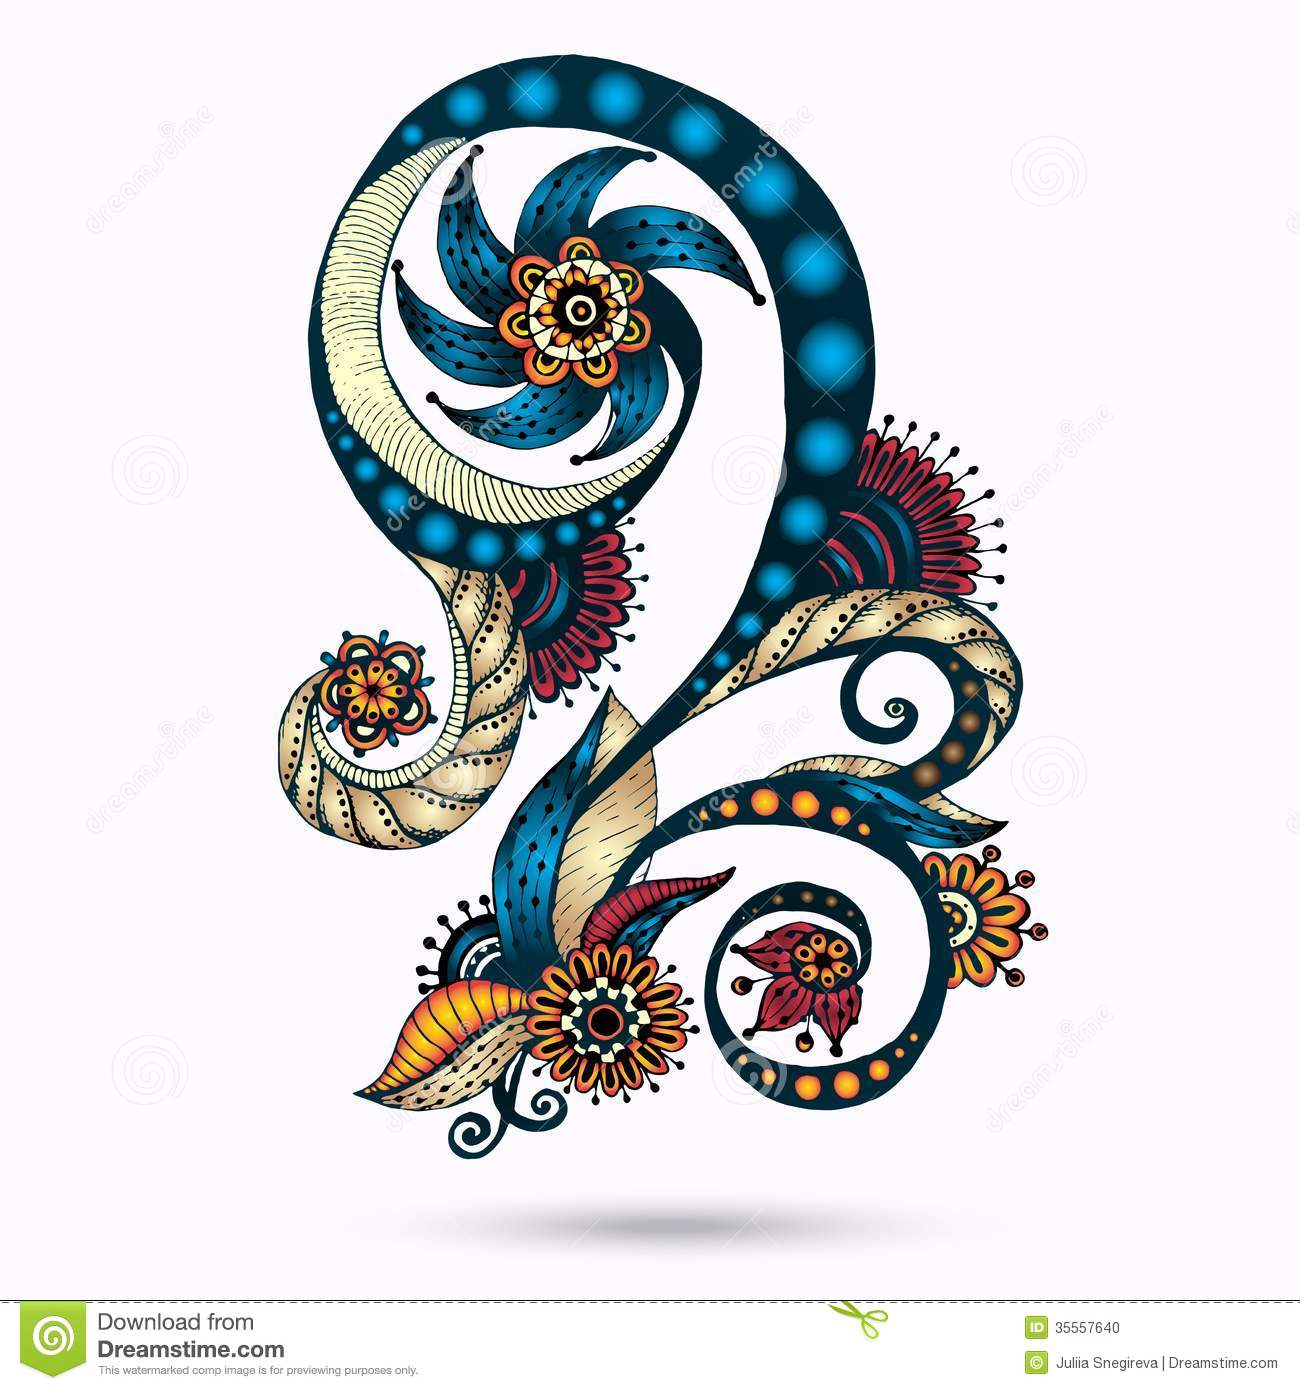 Colorful Henna Designs: Henna Paisley Mehndi Doodles Design Element. Stock Photo